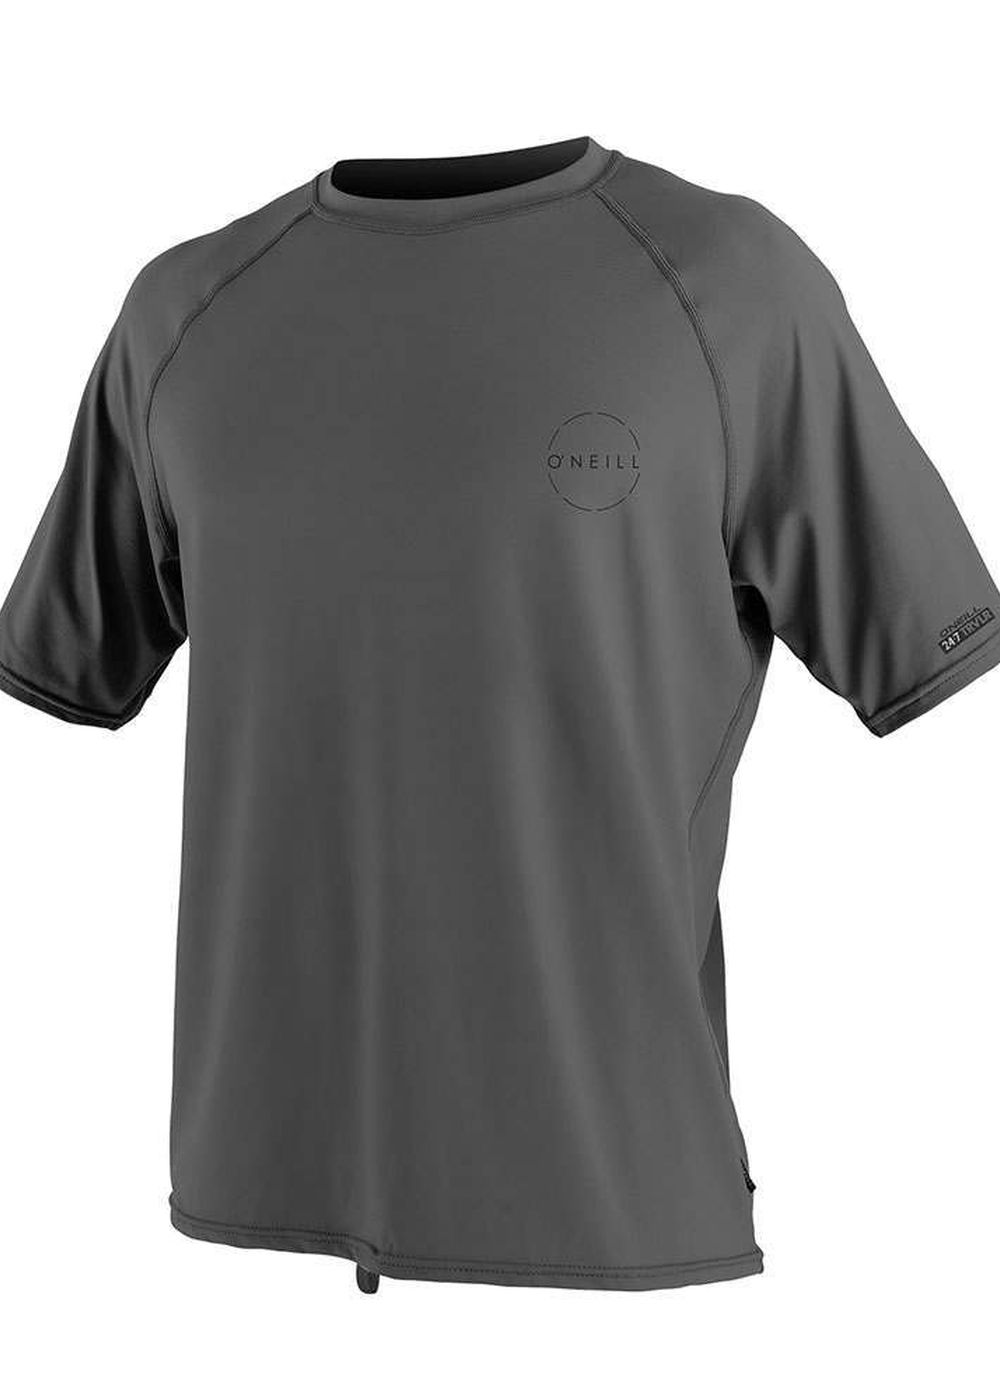 ONeill 24-7 Short Sleeve Rash Tee Graphite